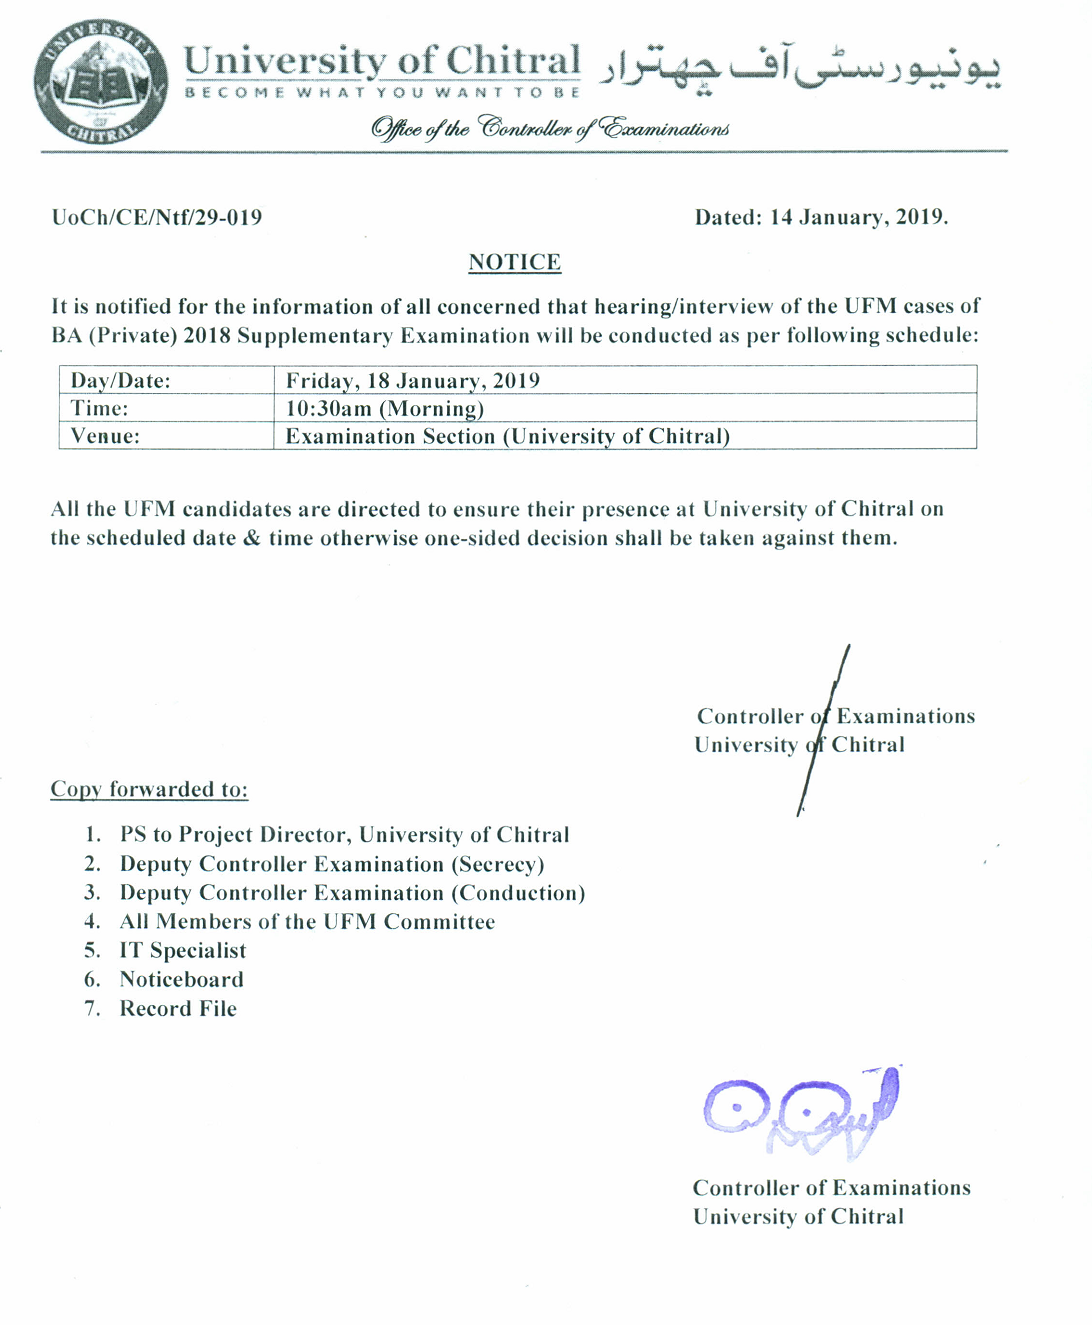 Schedule for hearing/interview of the UFM cases of BA (Private) 2018